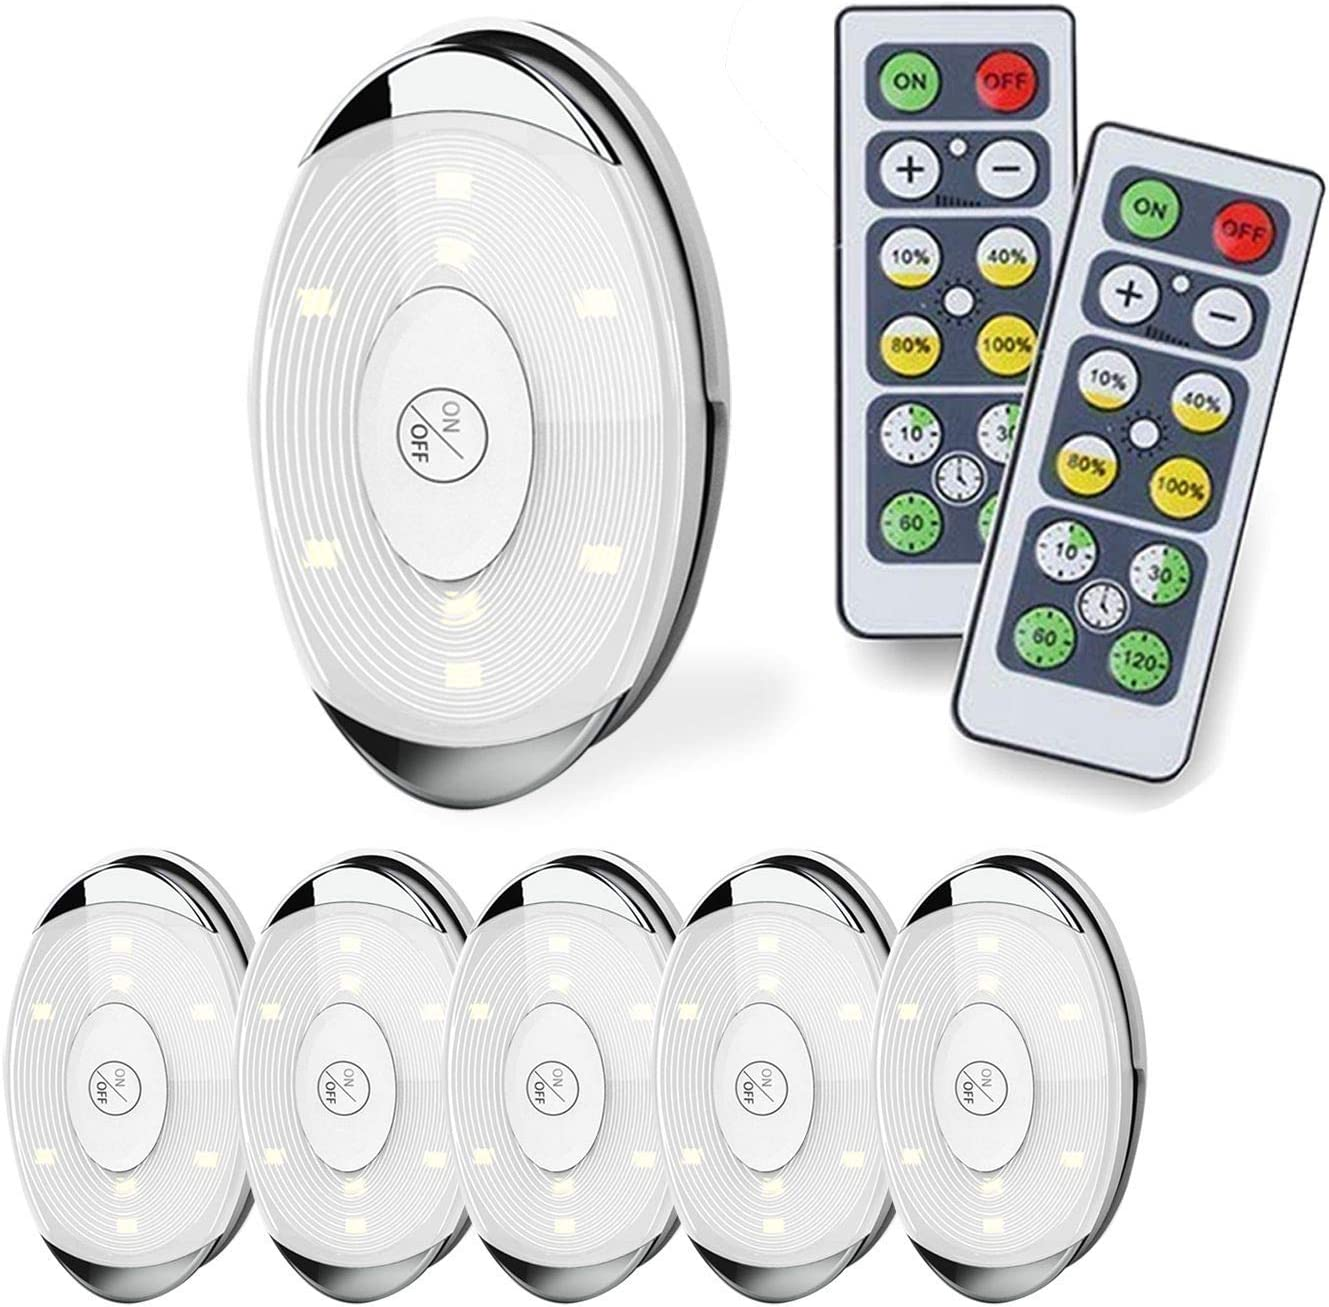 Amazon Com Led Puck Light Led Lights Battery Operated With Remote Control Wireless Soft Lighting Under Cabinet Lighting For Kitchen Timer Dimmer 4000k Warm White 6 Pack Home Improvement